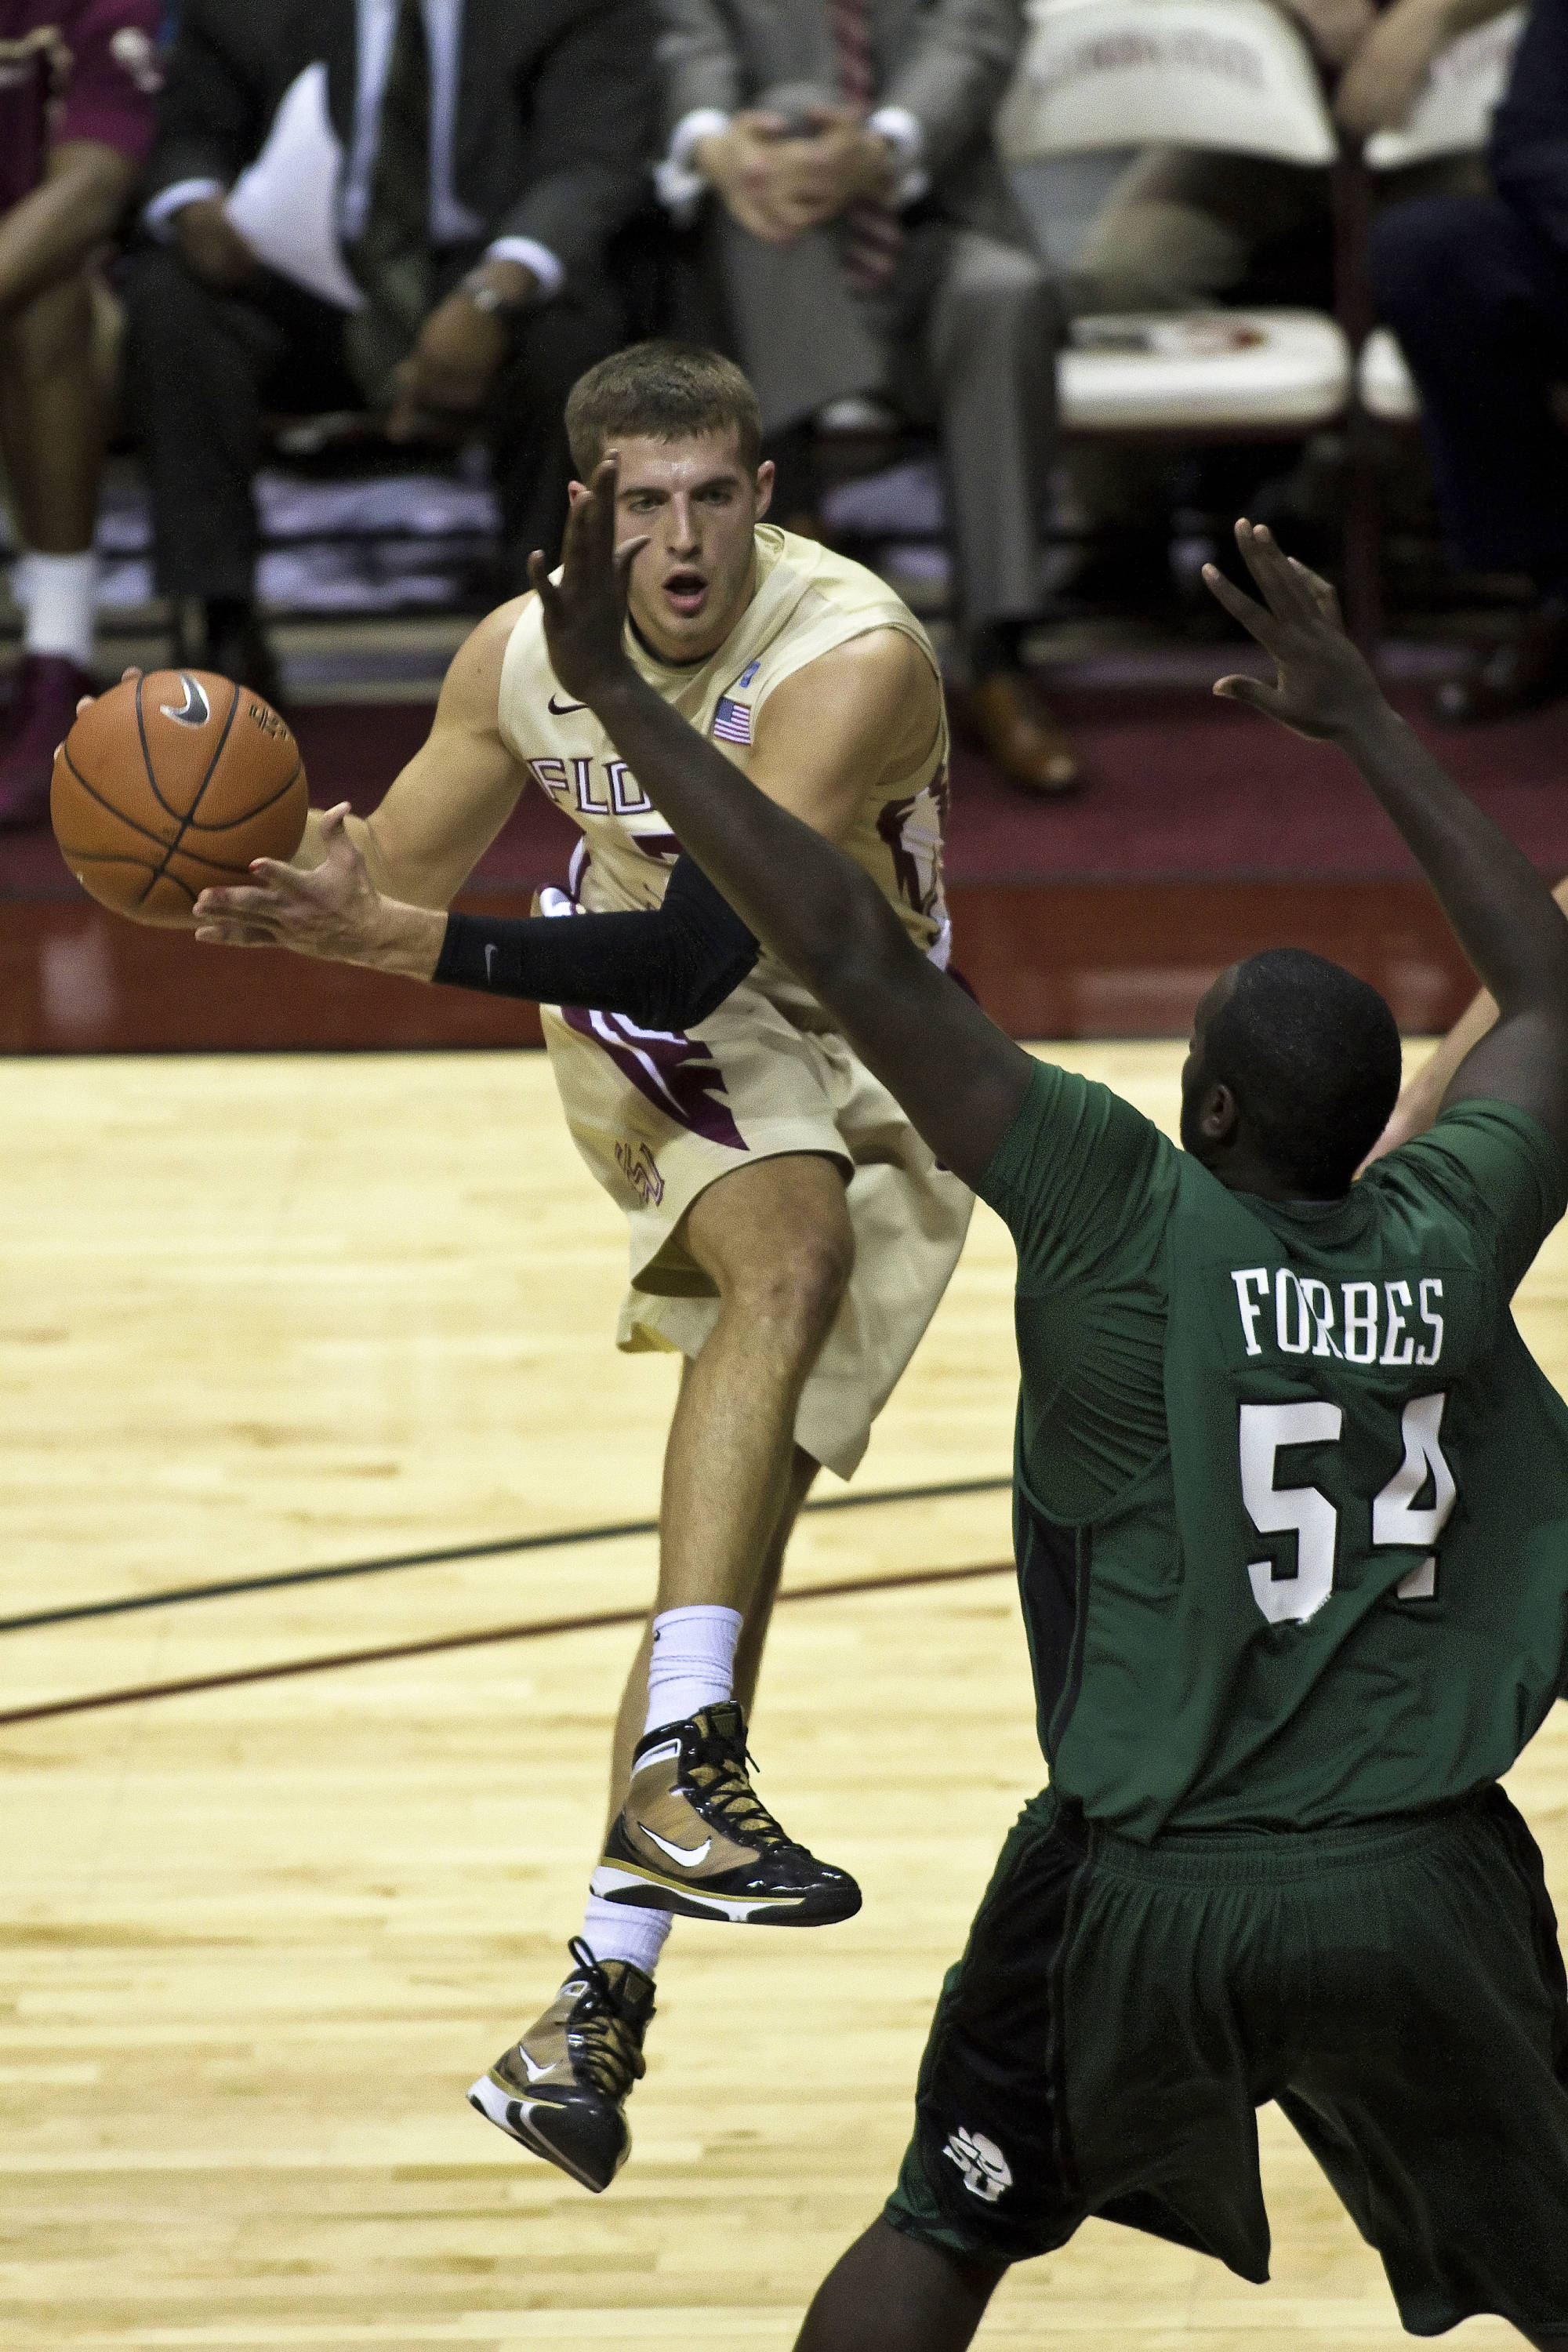 FSU vs Stetson - 12/15/2010 - Luke Loucks (3)